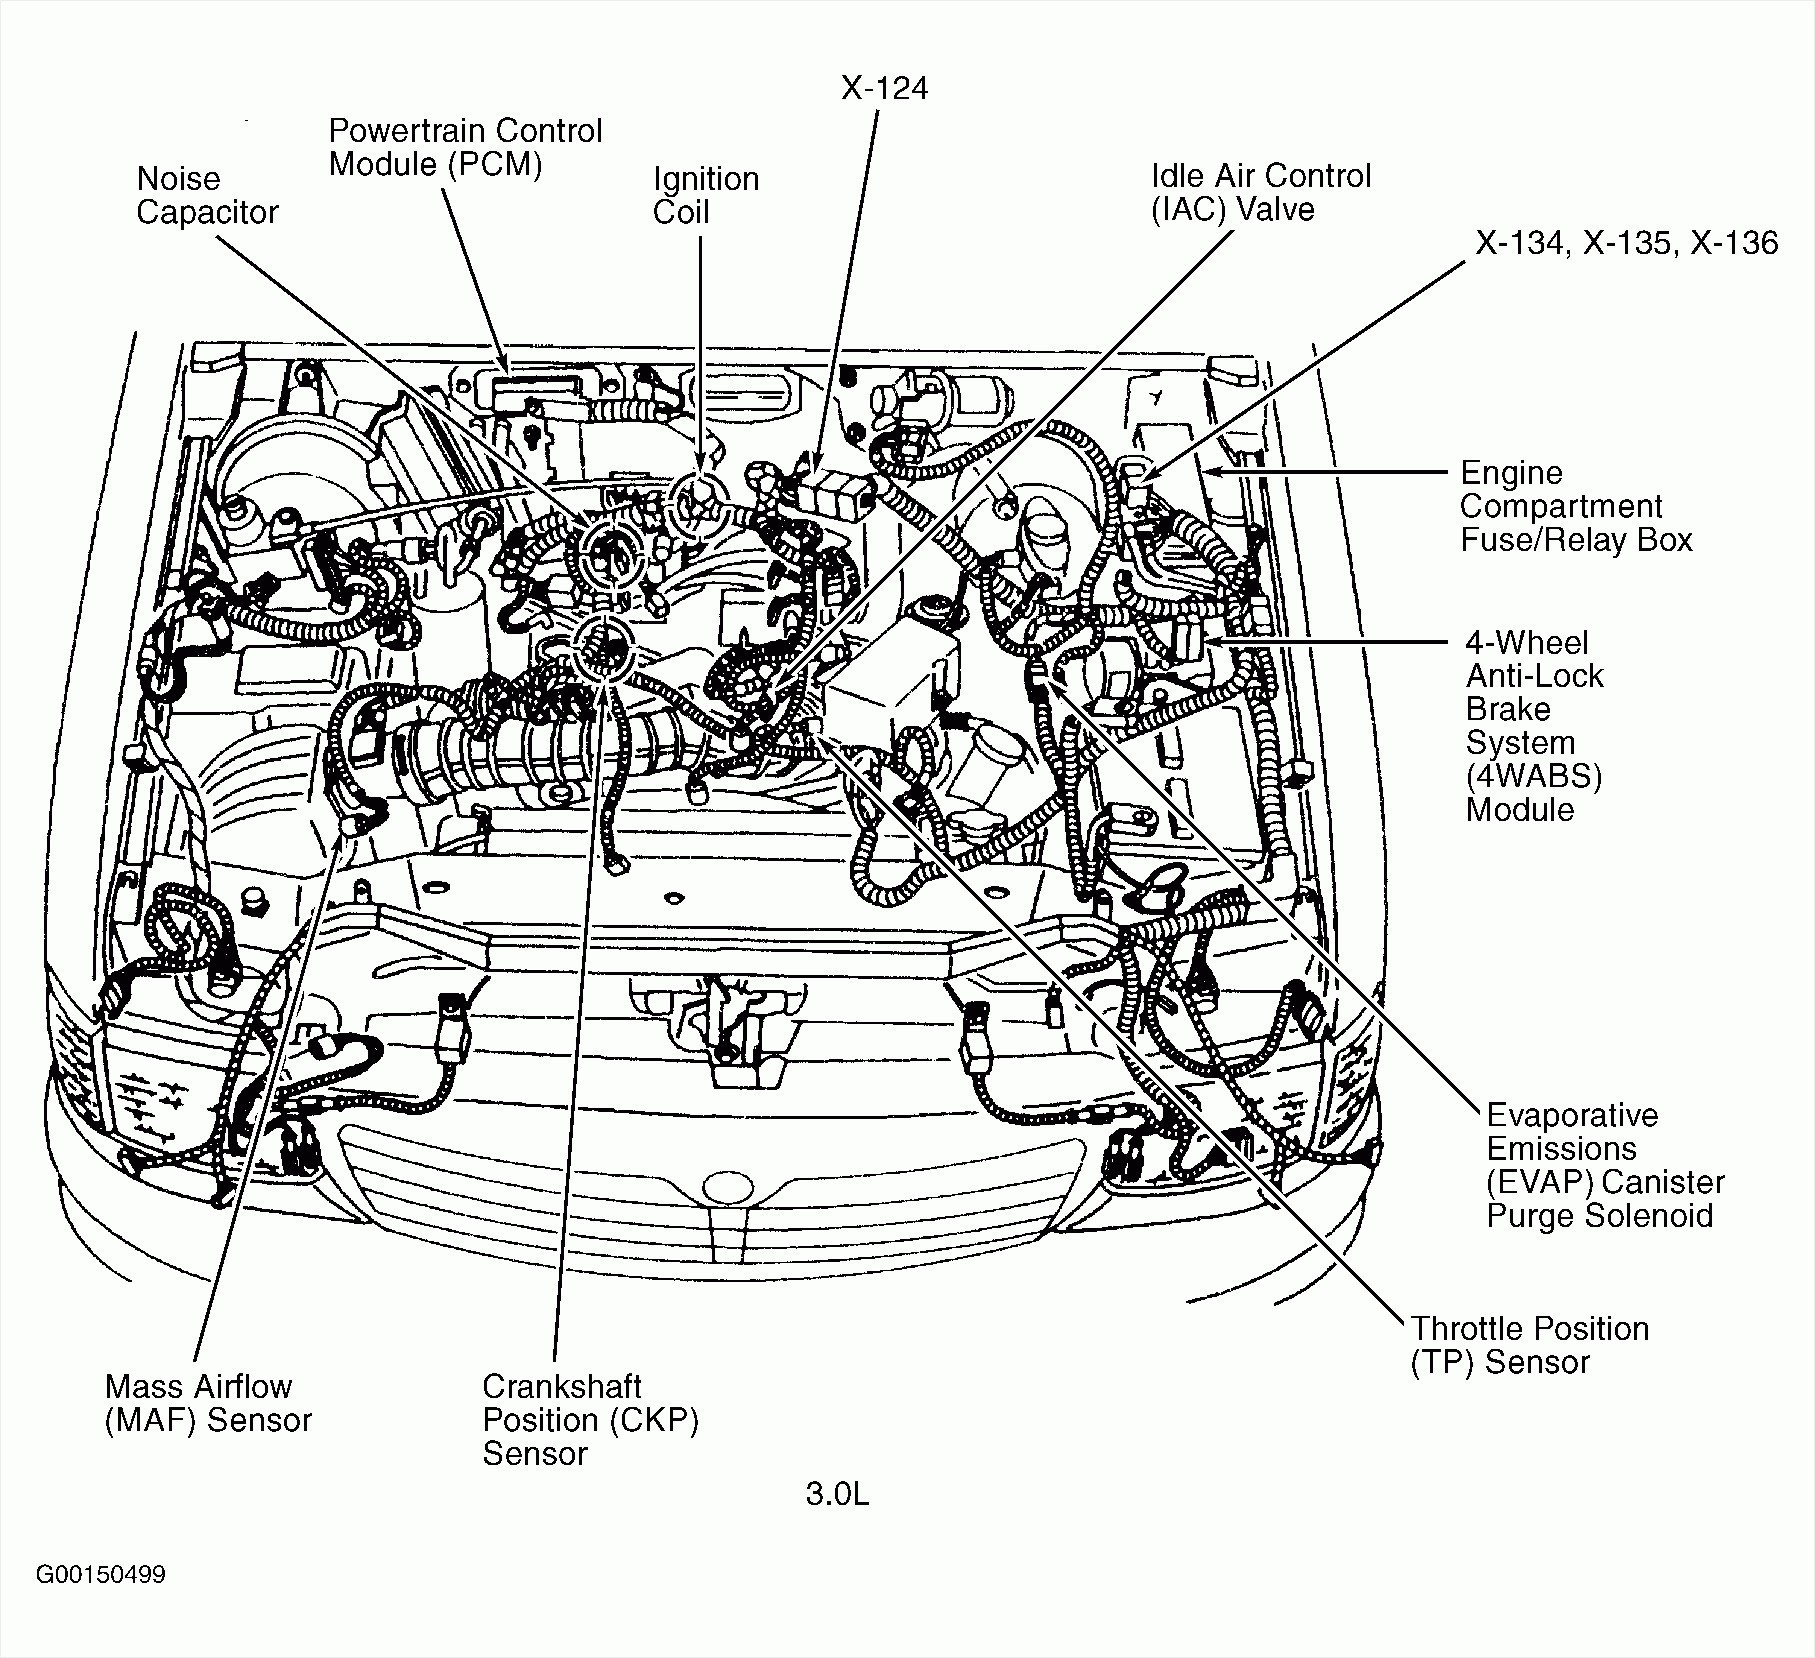 hight resolution of 2013 honda pilot fuse diagram